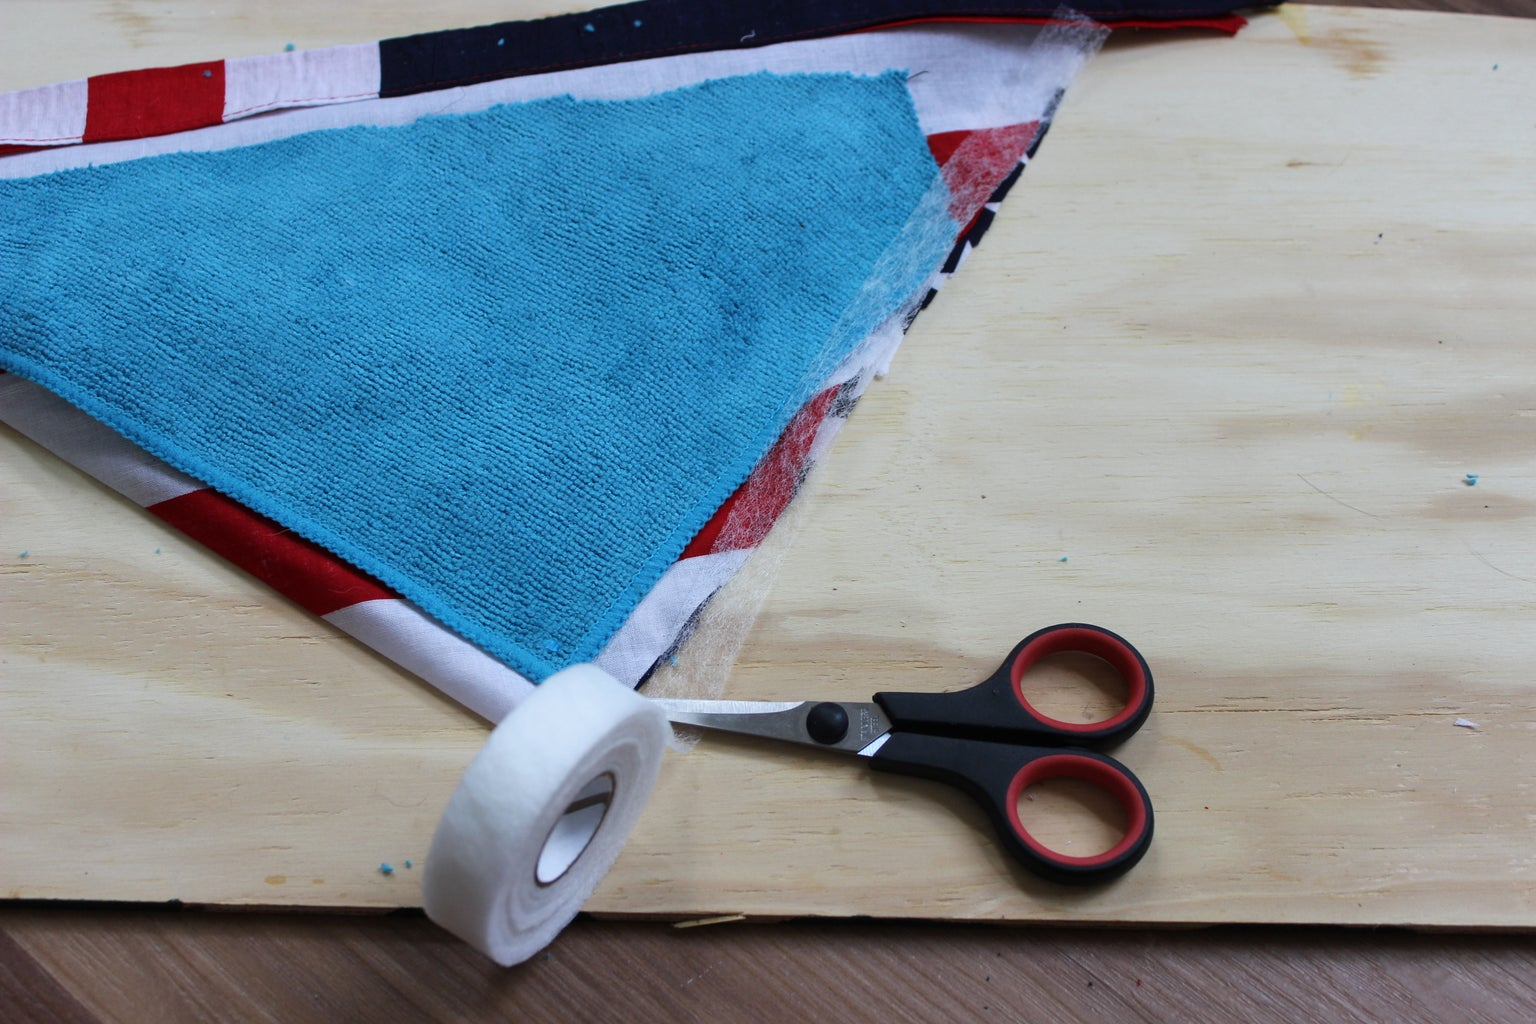 Bandana Triangle Design Part 3 (Optional): the Soft Underbelly and Retaining Strap